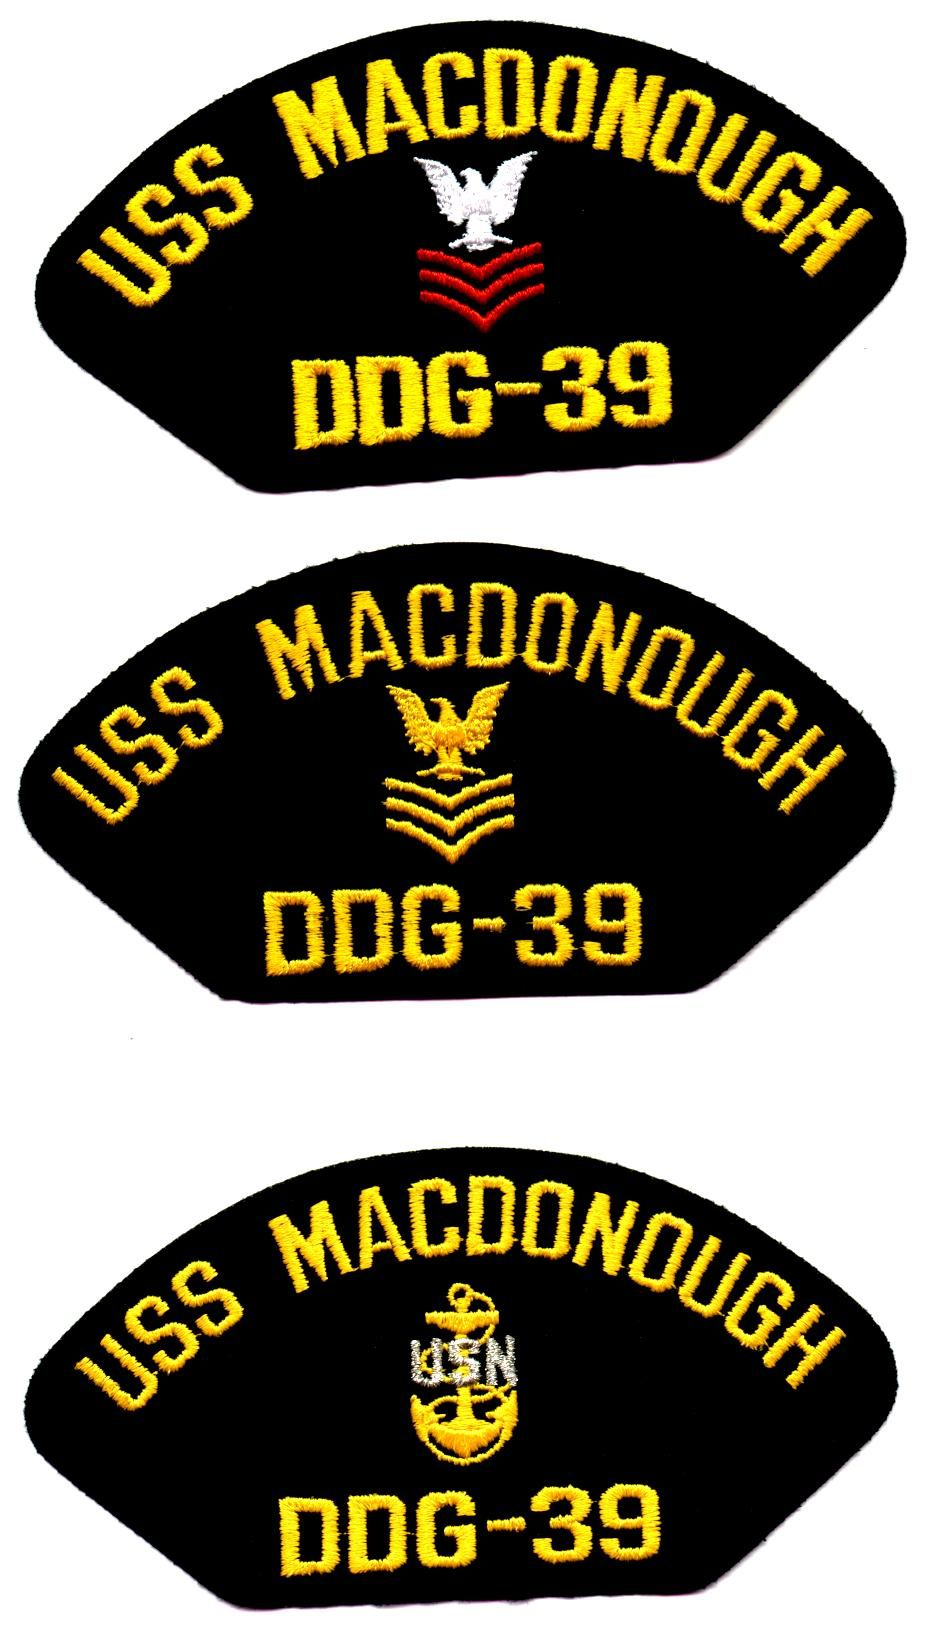 USS MacDONOUGH DDG-39 - 2 Original hat patches selling for $2.00 ea. including s & h by First Class Mail.  Contact ussforrestalcva59@gmail.com for larger quantity pricing.